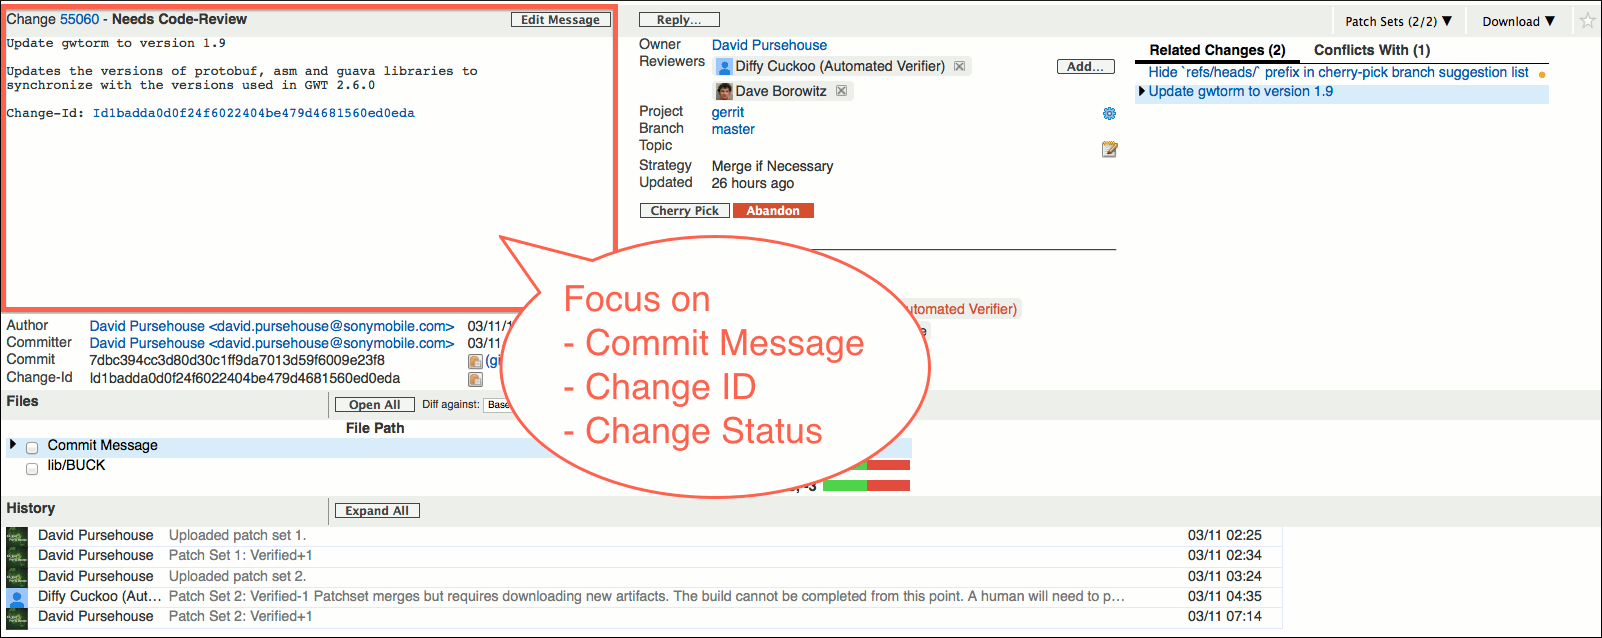 images/user-review-ui-change-screen-commit-message.png